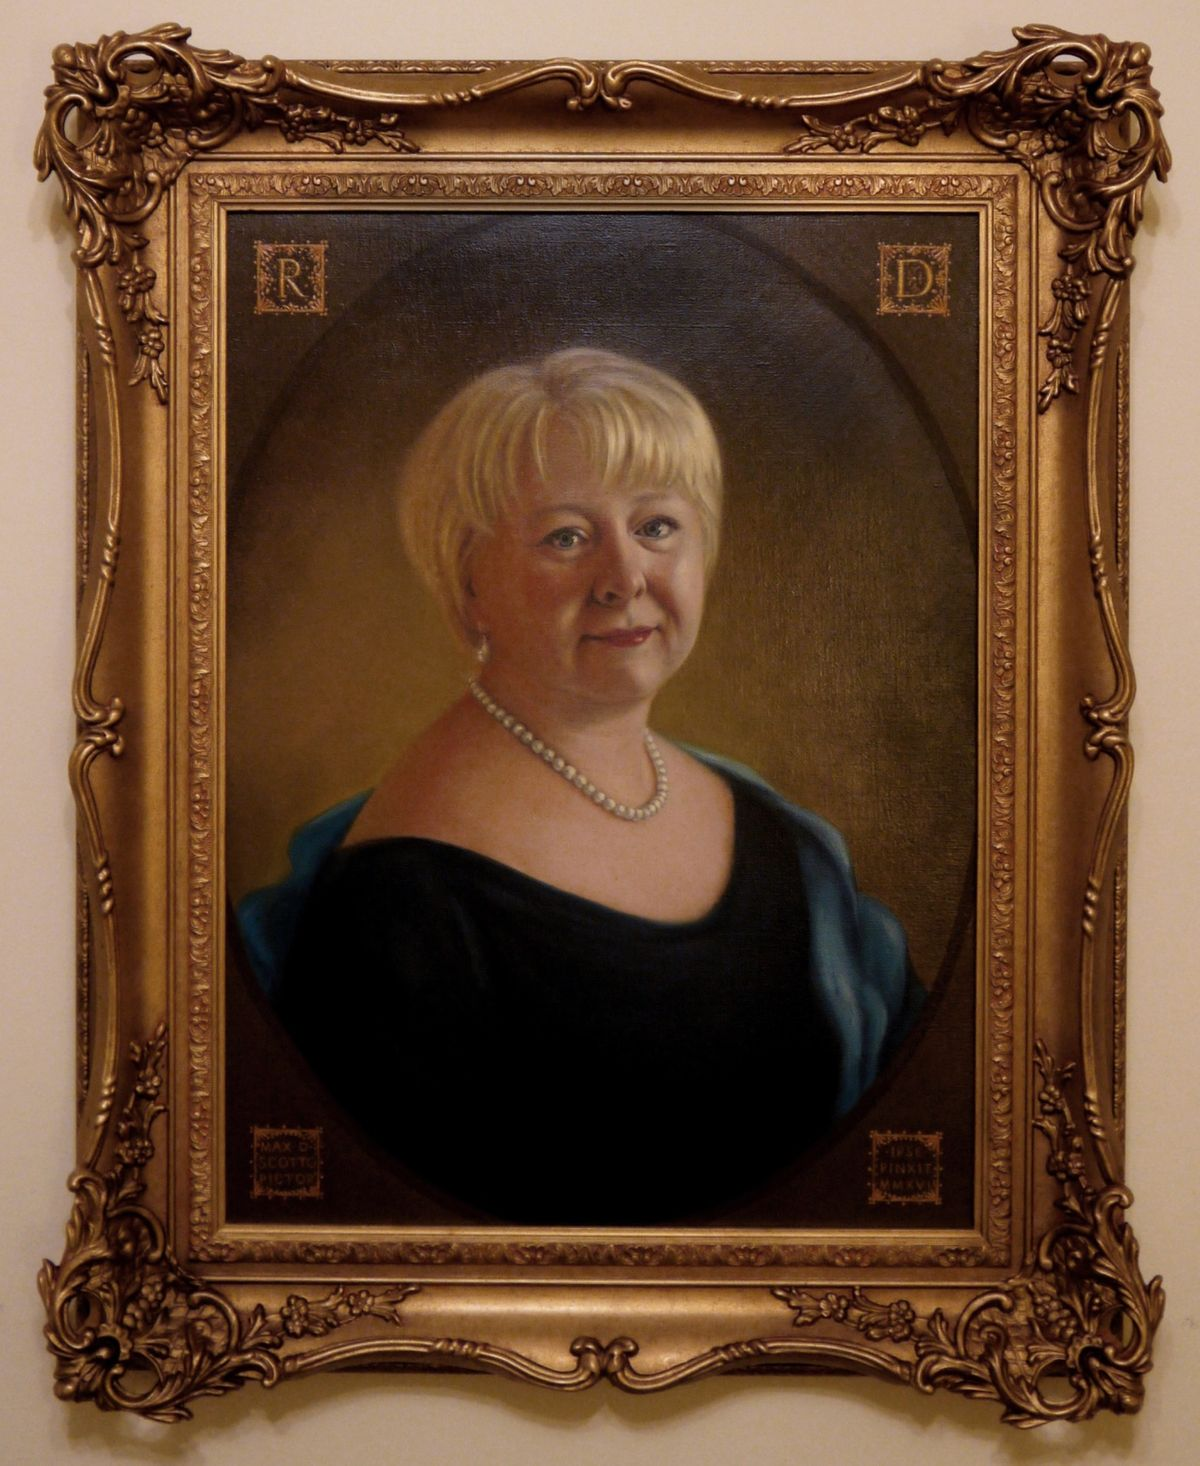 LADY REGINA, 6th BARONESS of NORTH CADBURY by MAX SCOTTO 2016 ©The Baron de Newmarch Collection